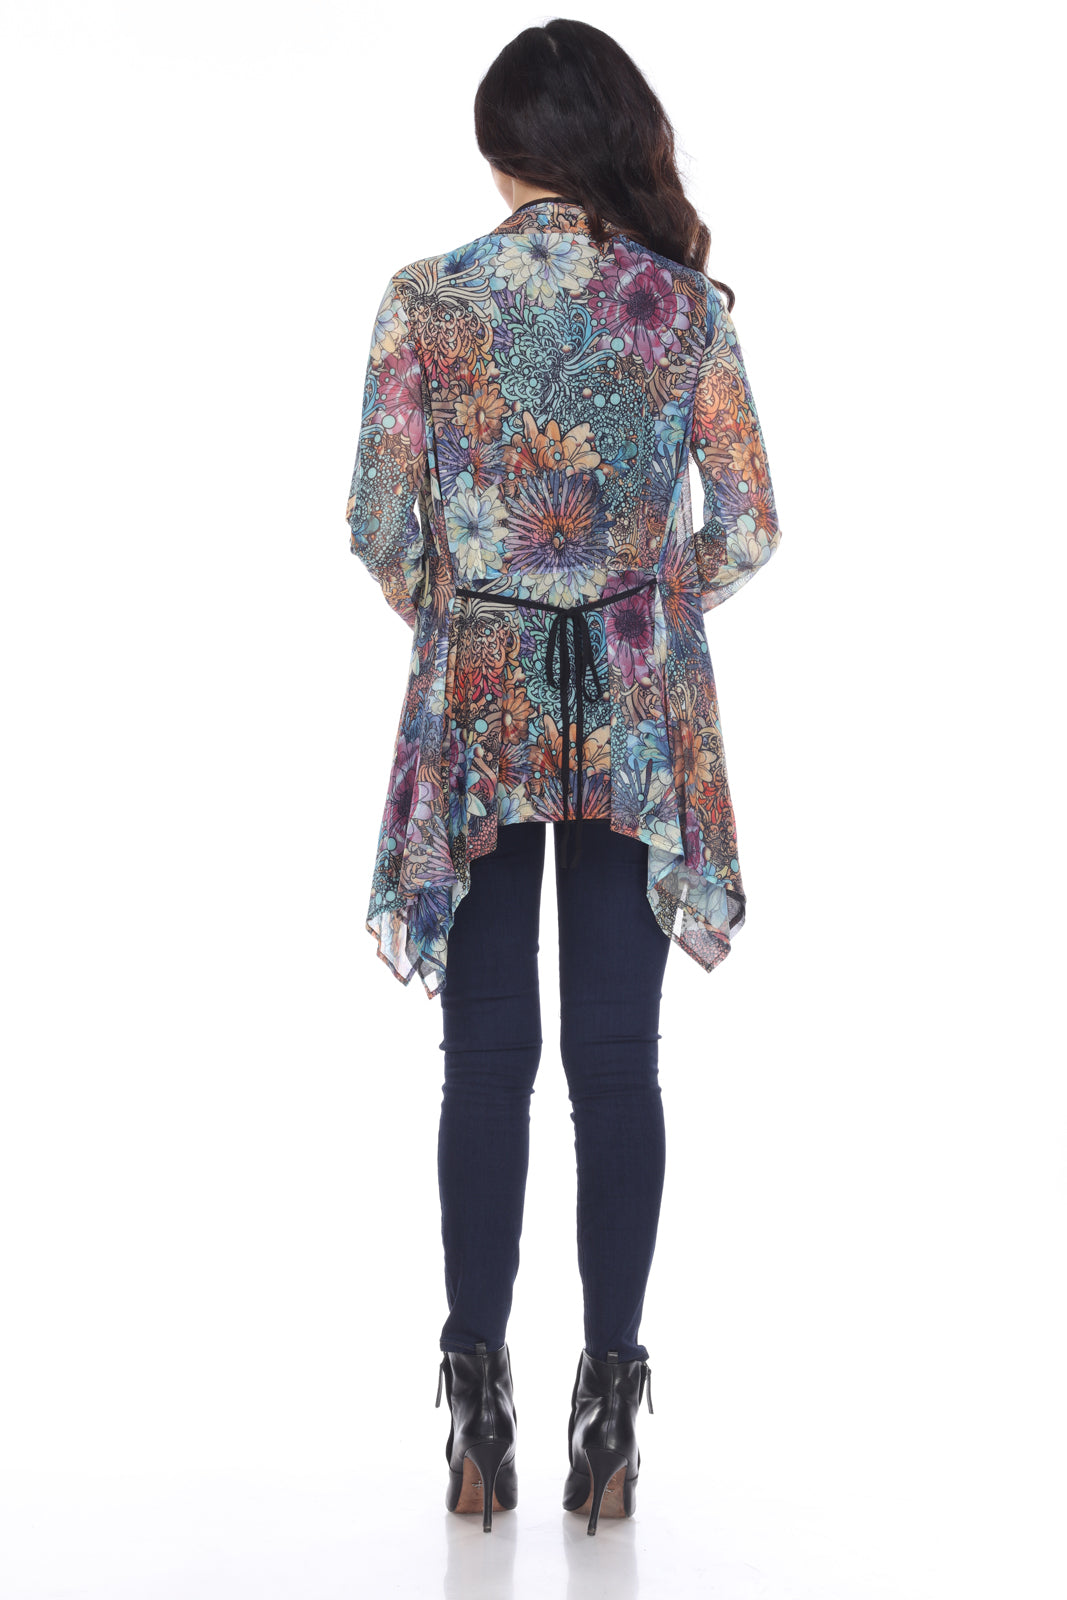 Beautiful Floral Print Jacket - You-nique Bou-tique